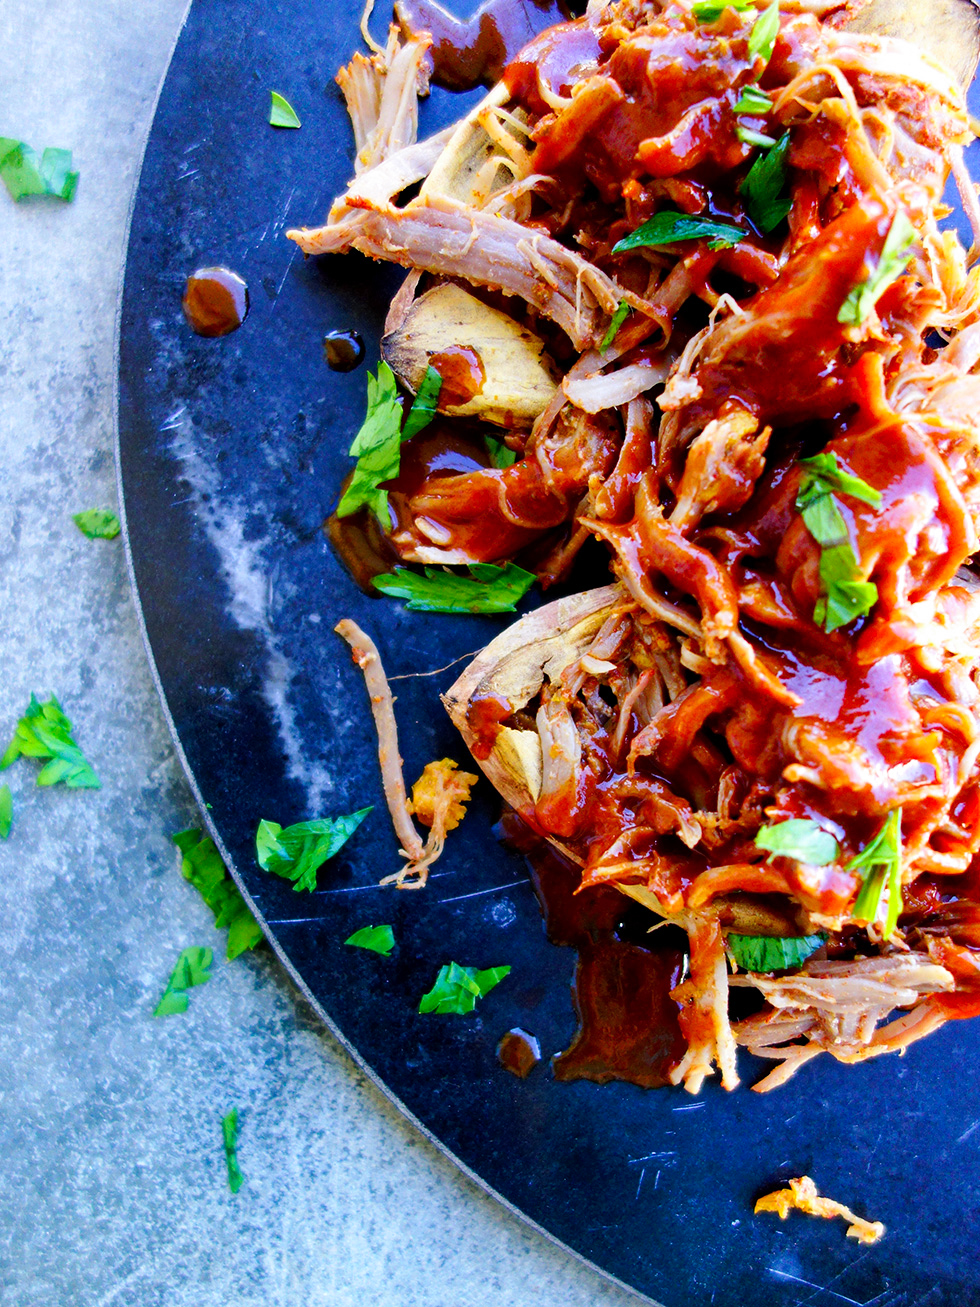 Pressure Cooked Pulled Pork with Sticky Orange BBQ Sauce